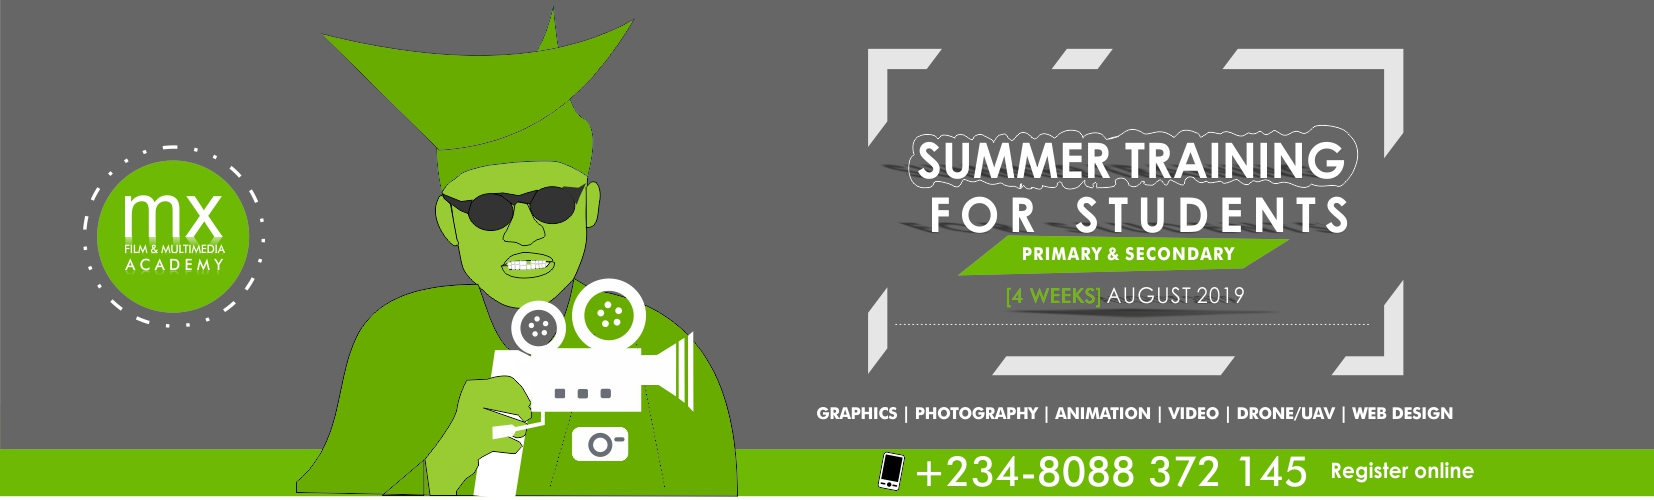 Summertraining_banner_02